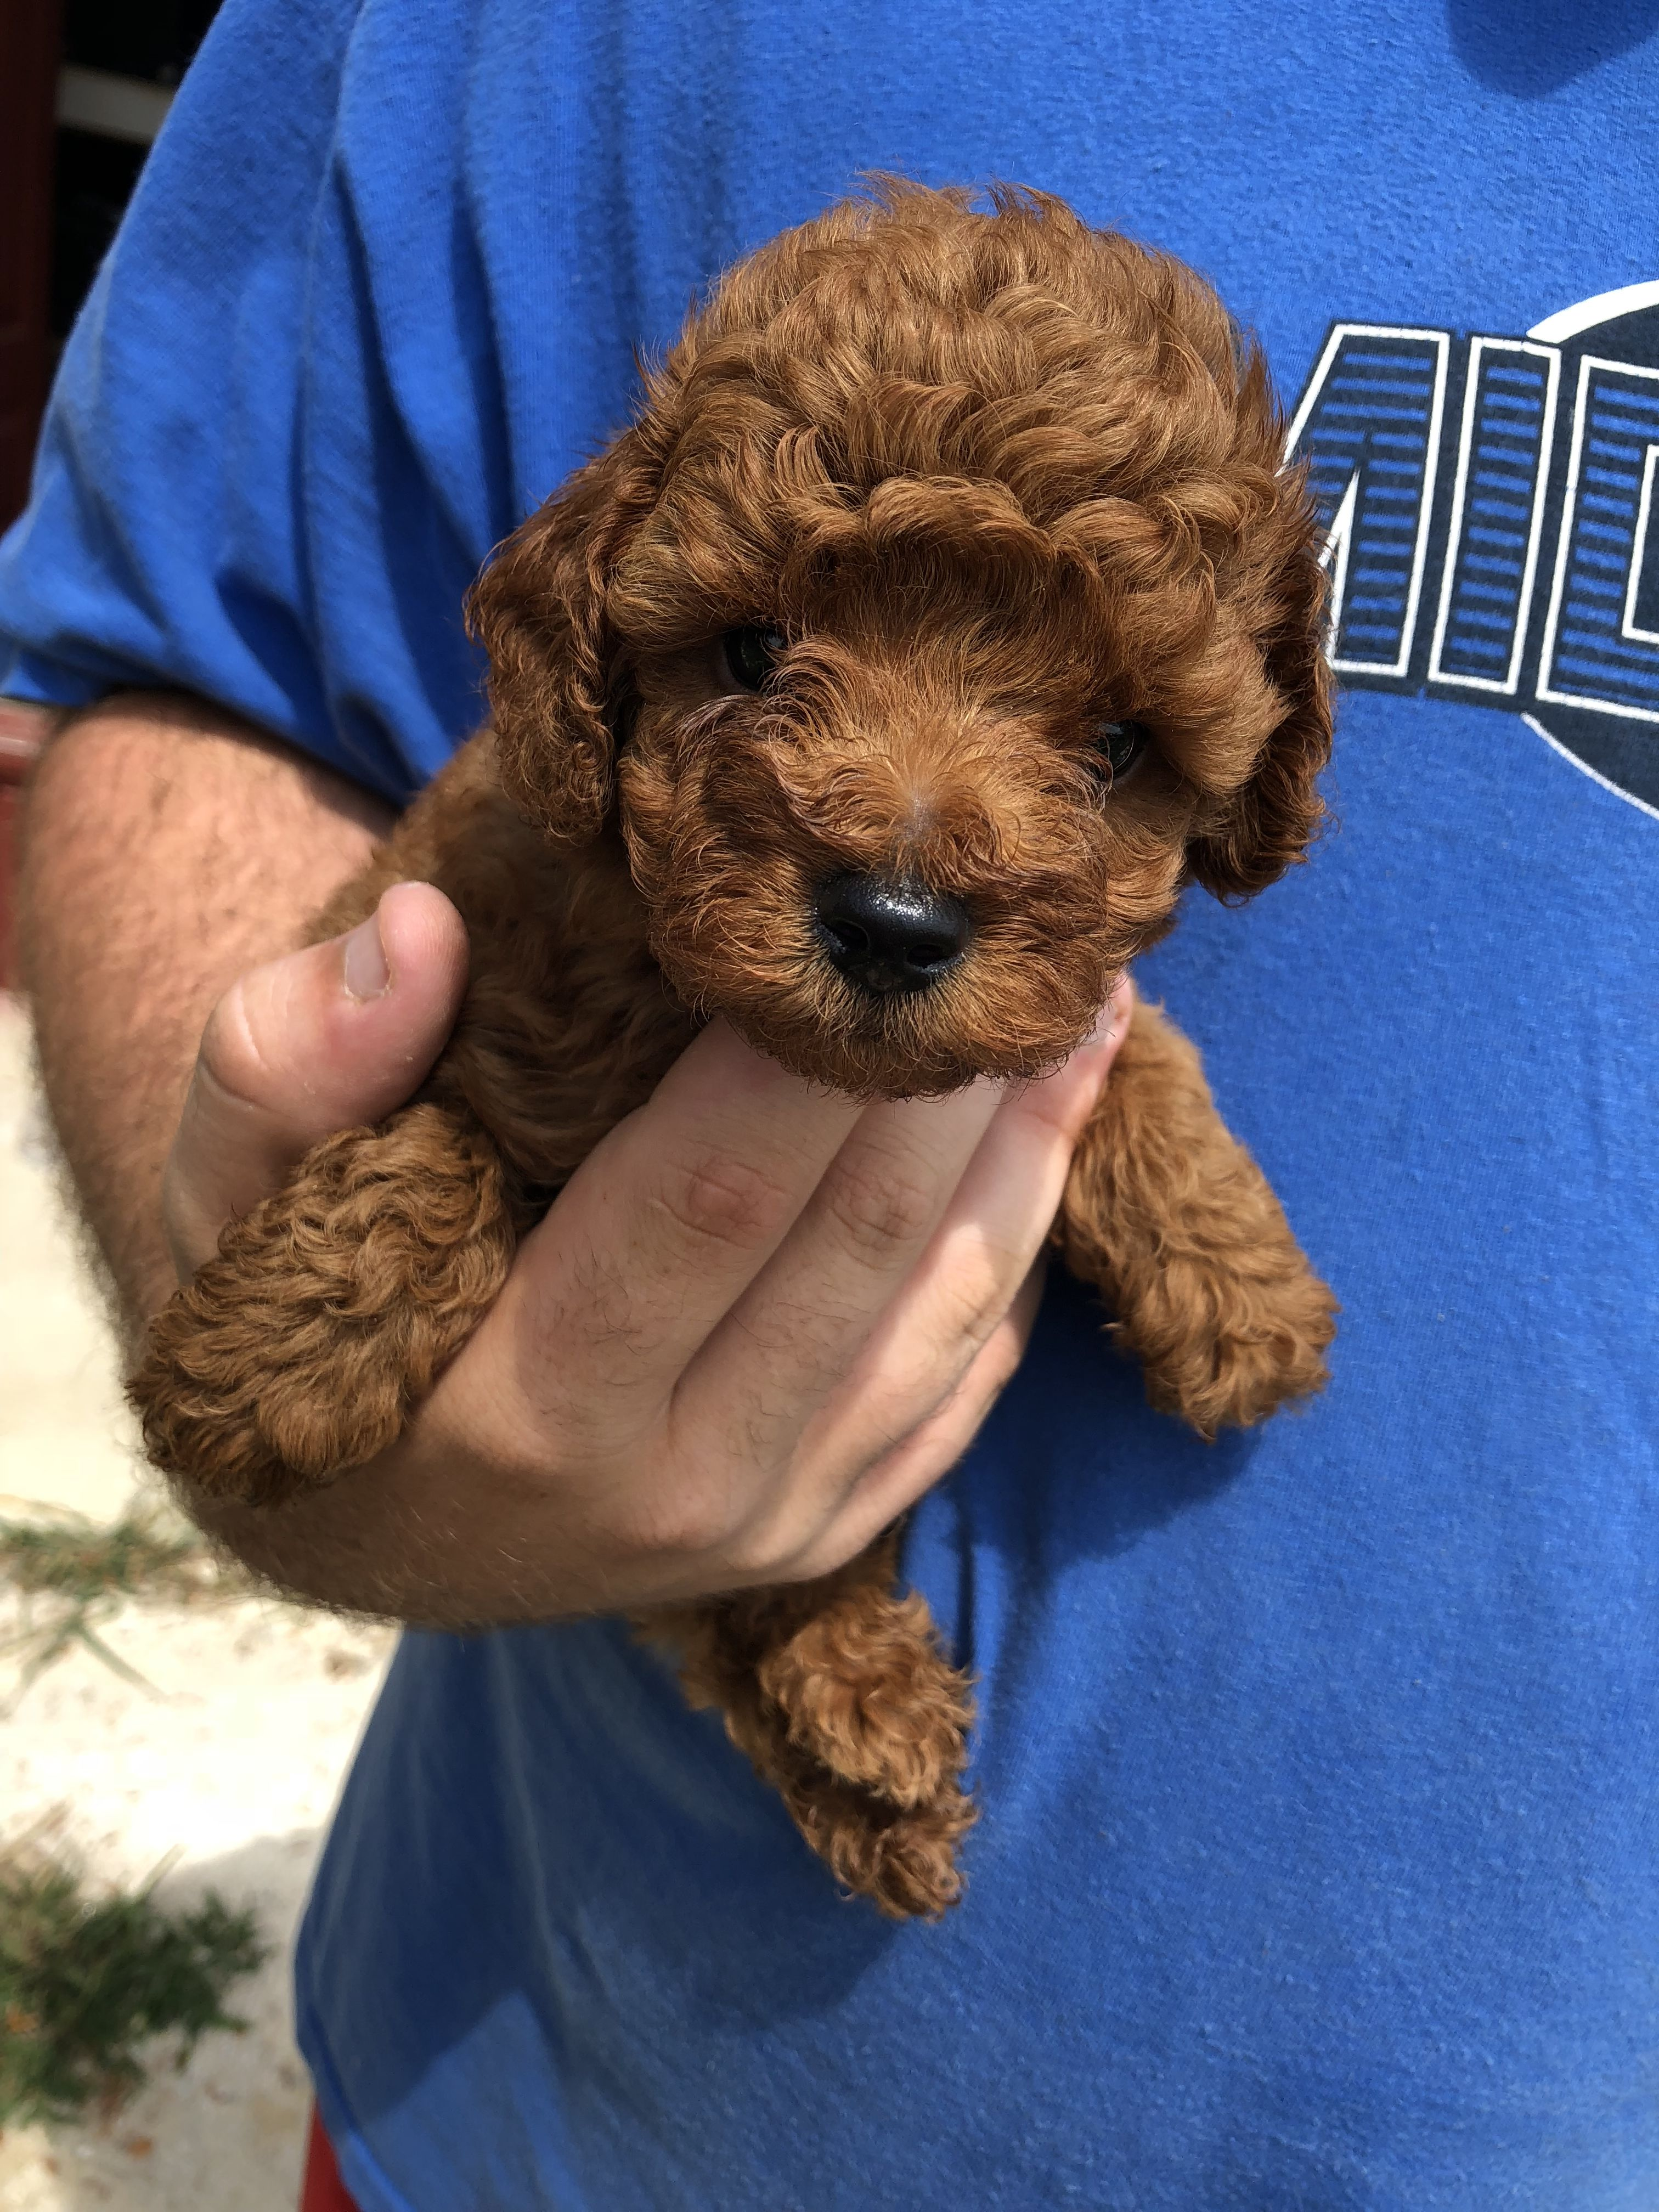 We Raise Toy Poodle Puppies We Are A Very Small Family Owned